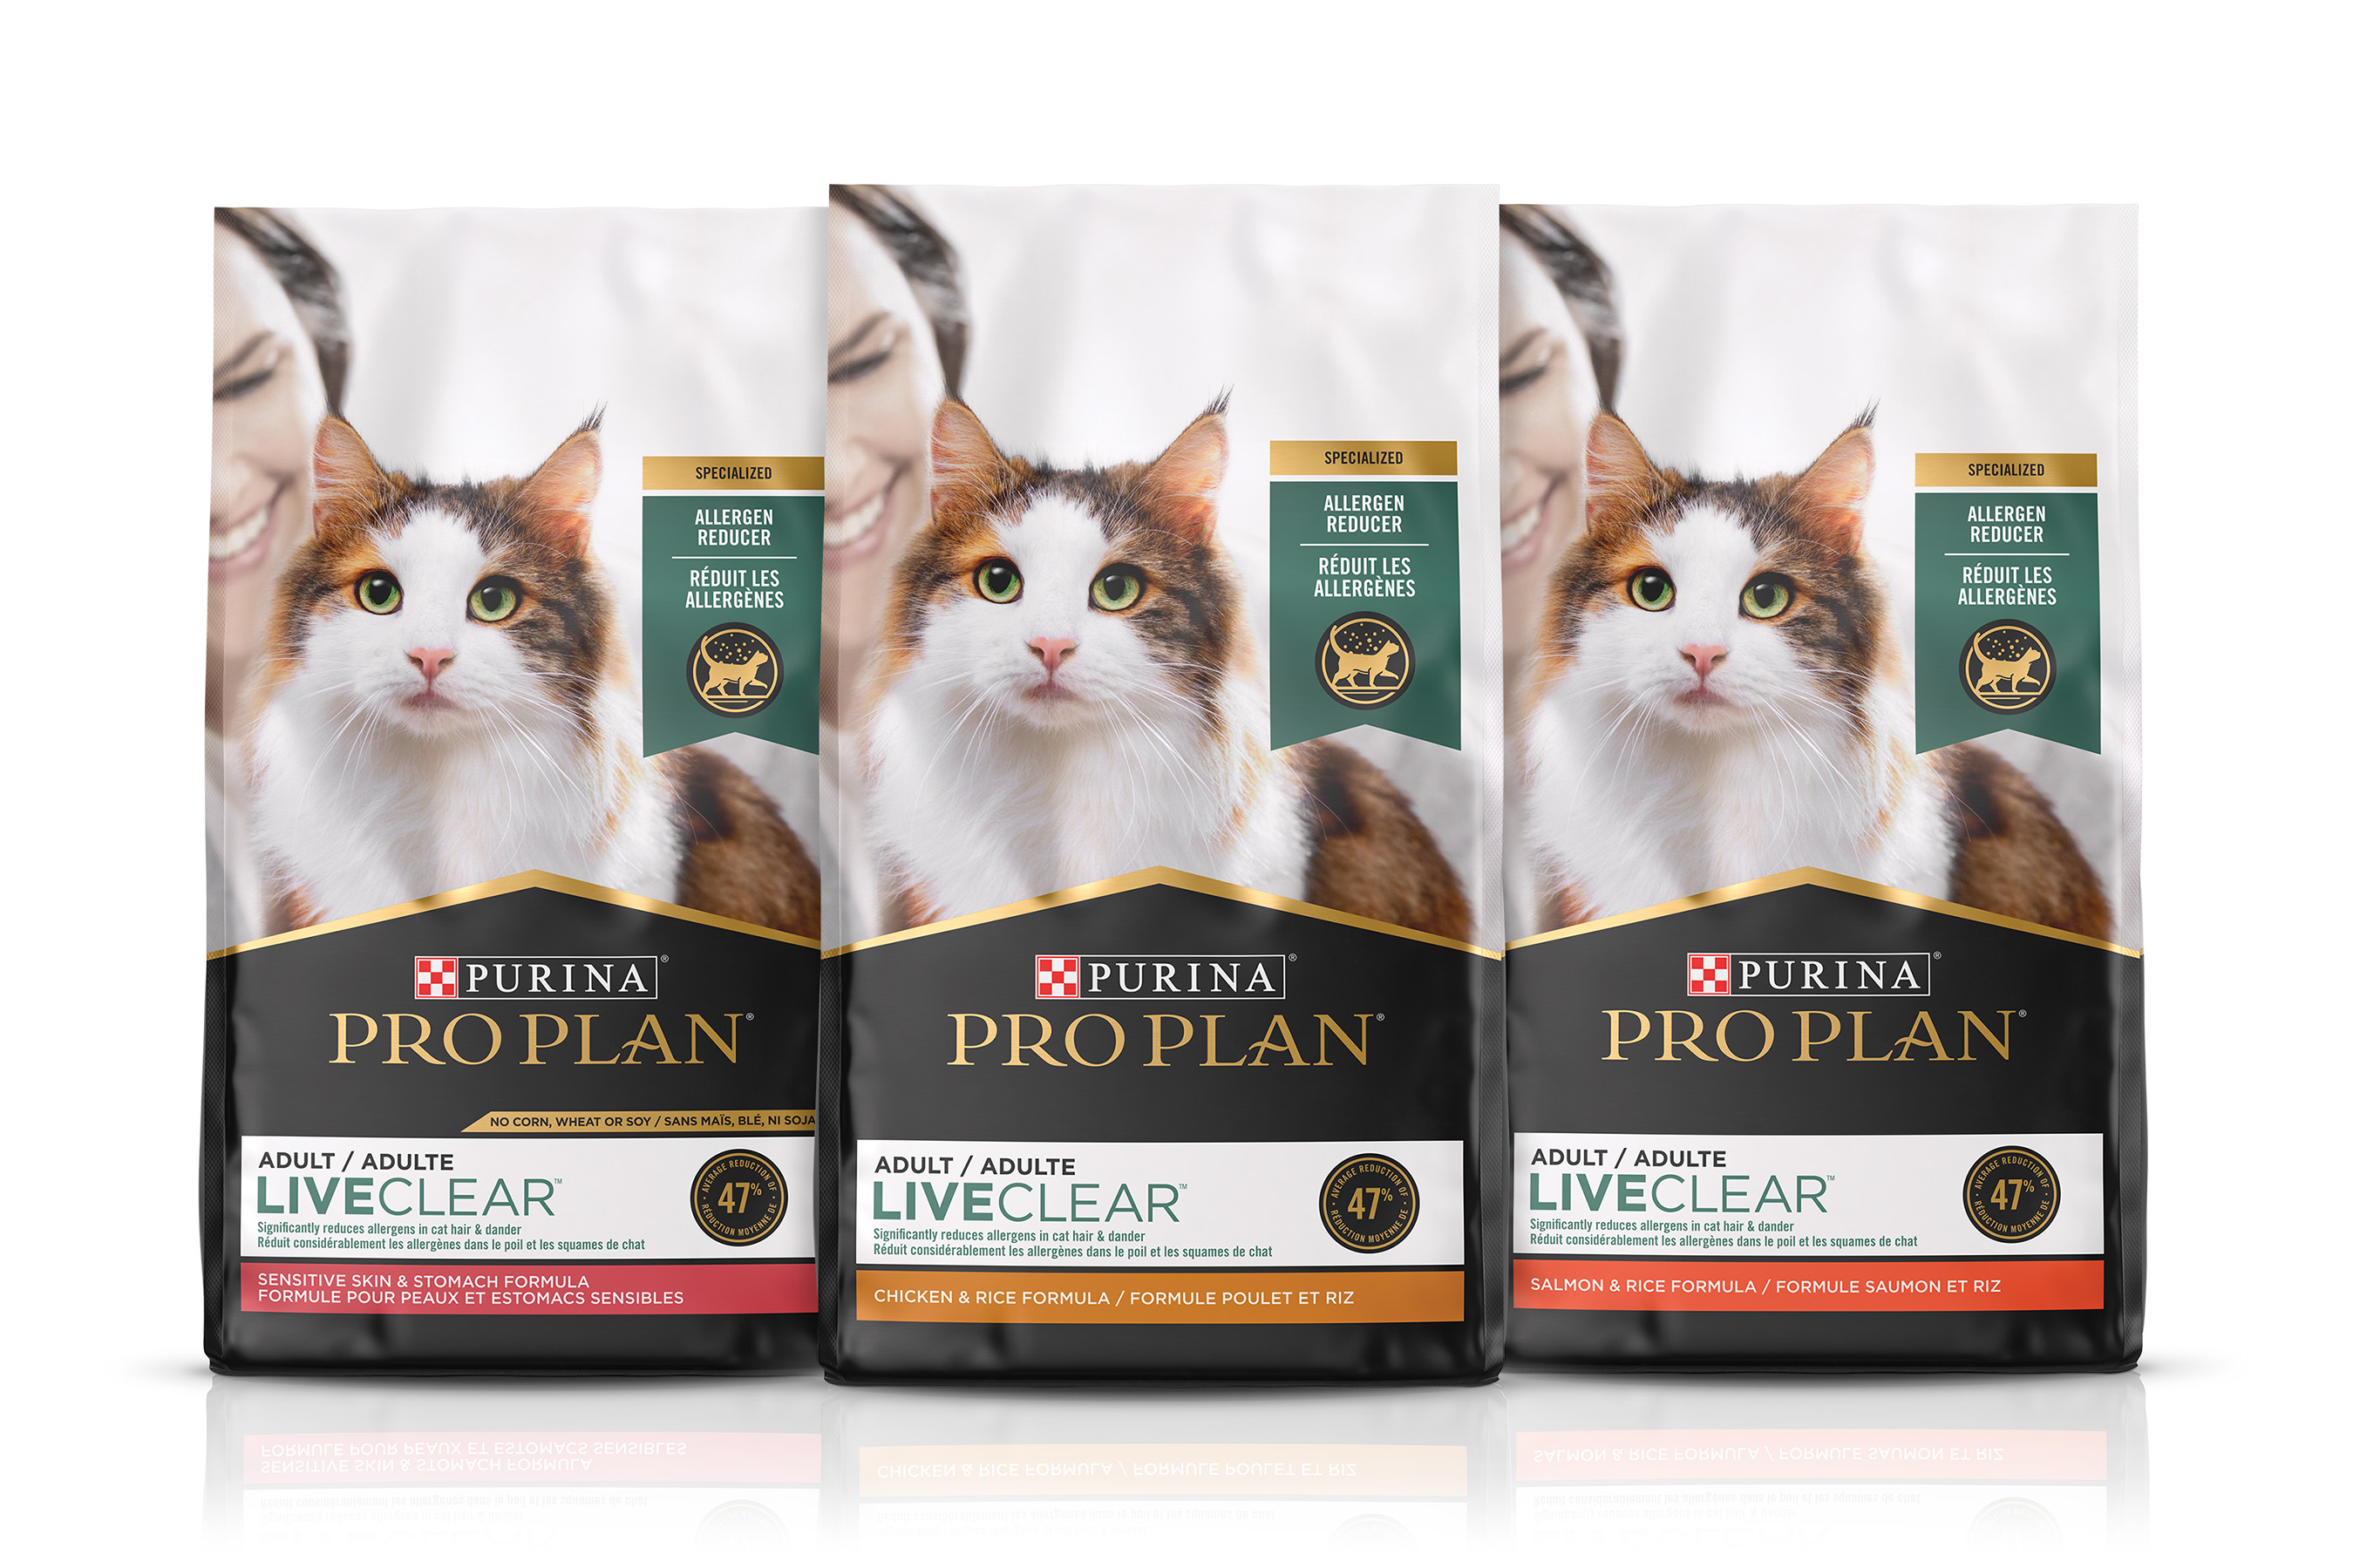 Pro Plan LiveClear, the first and only cat food that reduces the allergens in cat hair and dander, is a revolutionary approach in the management of cat allergens and is now available for purchase